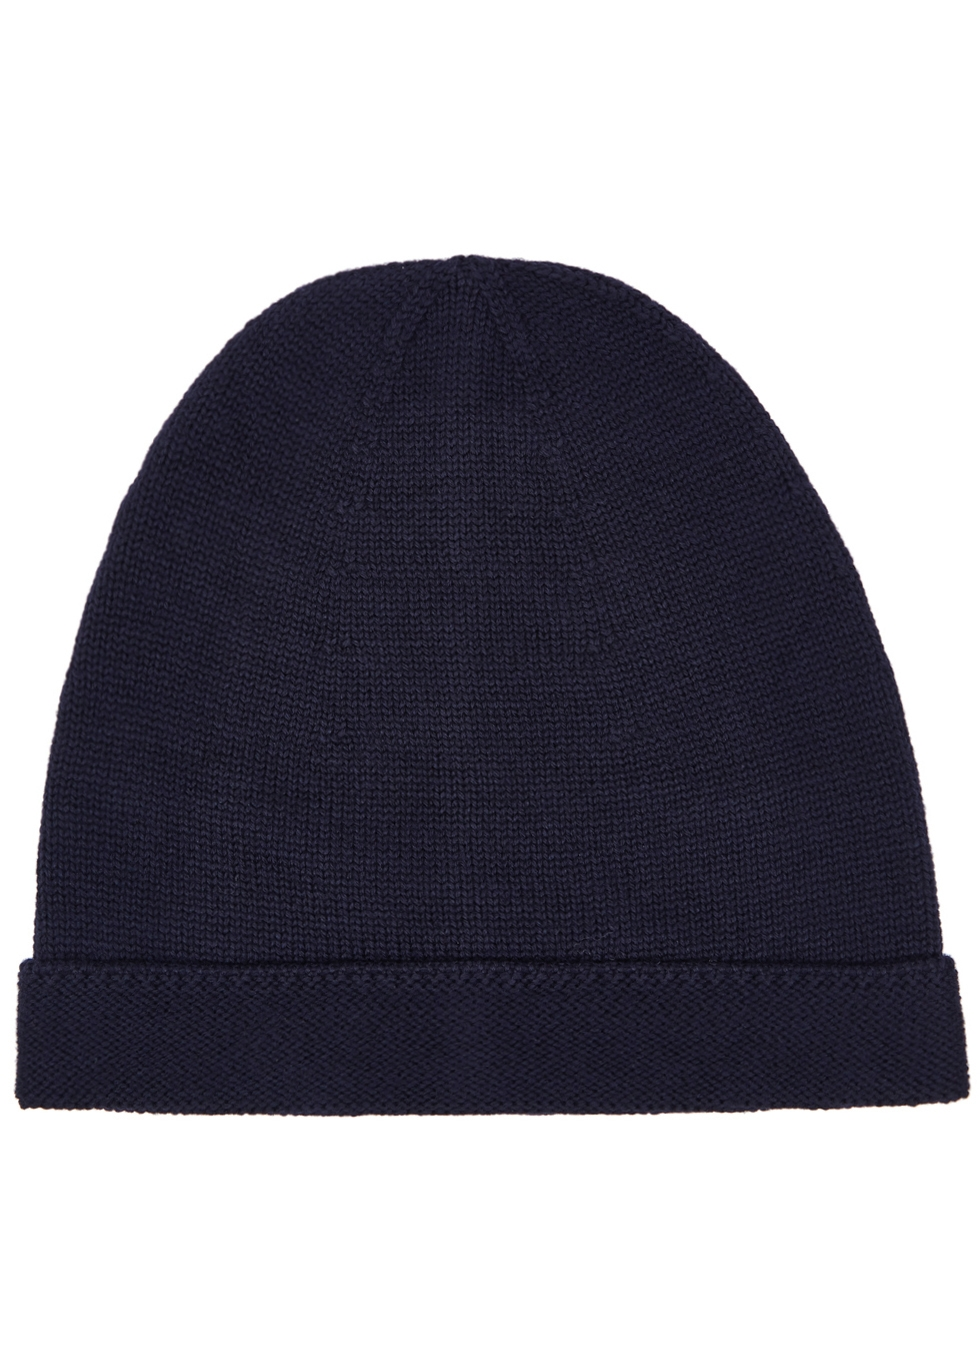 GUCCI NAVY FINE-KNIT WOOL BEANIE